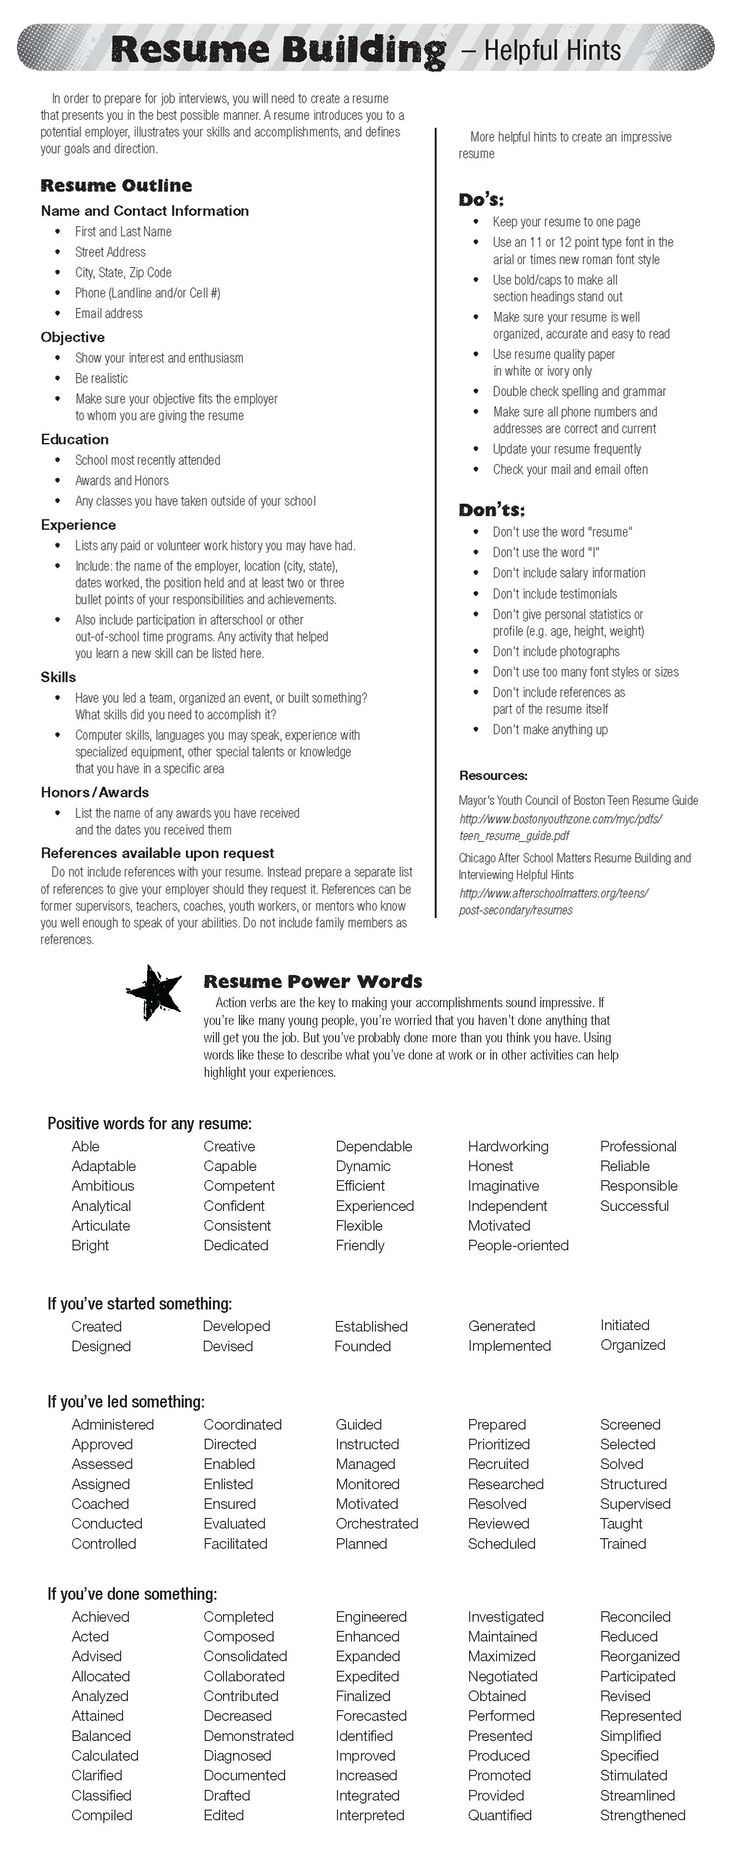 Opposenewapstandardsus  Seductive  Ideas About Resume On Pinterest  Cv Format Resume Cv And  With Exciting  Ideas About Resume On Pinterest  Cv Format Resume Cv And Resume Templates With Extraordinary Resume Operations Manager Also Resume Services Houston In Addition Sample Teenage Resume And Security Forces Resume As Well As Cna Objective Resume Examples Additionally Postpartum Nurse Resume From Pinterestcom With Opposenewapstandardsus  Exciting  Ideas About Resume On Pinterest  Cv Format Resume Cv And  With Extraordinary  Ideas About Resume On Pinterest  Cv Format Resume Cv And Resume Templates And Seductive Resume Operations Manager Also Resume Services Houston In Addition Sample Teenage Resume From Pinterestcom